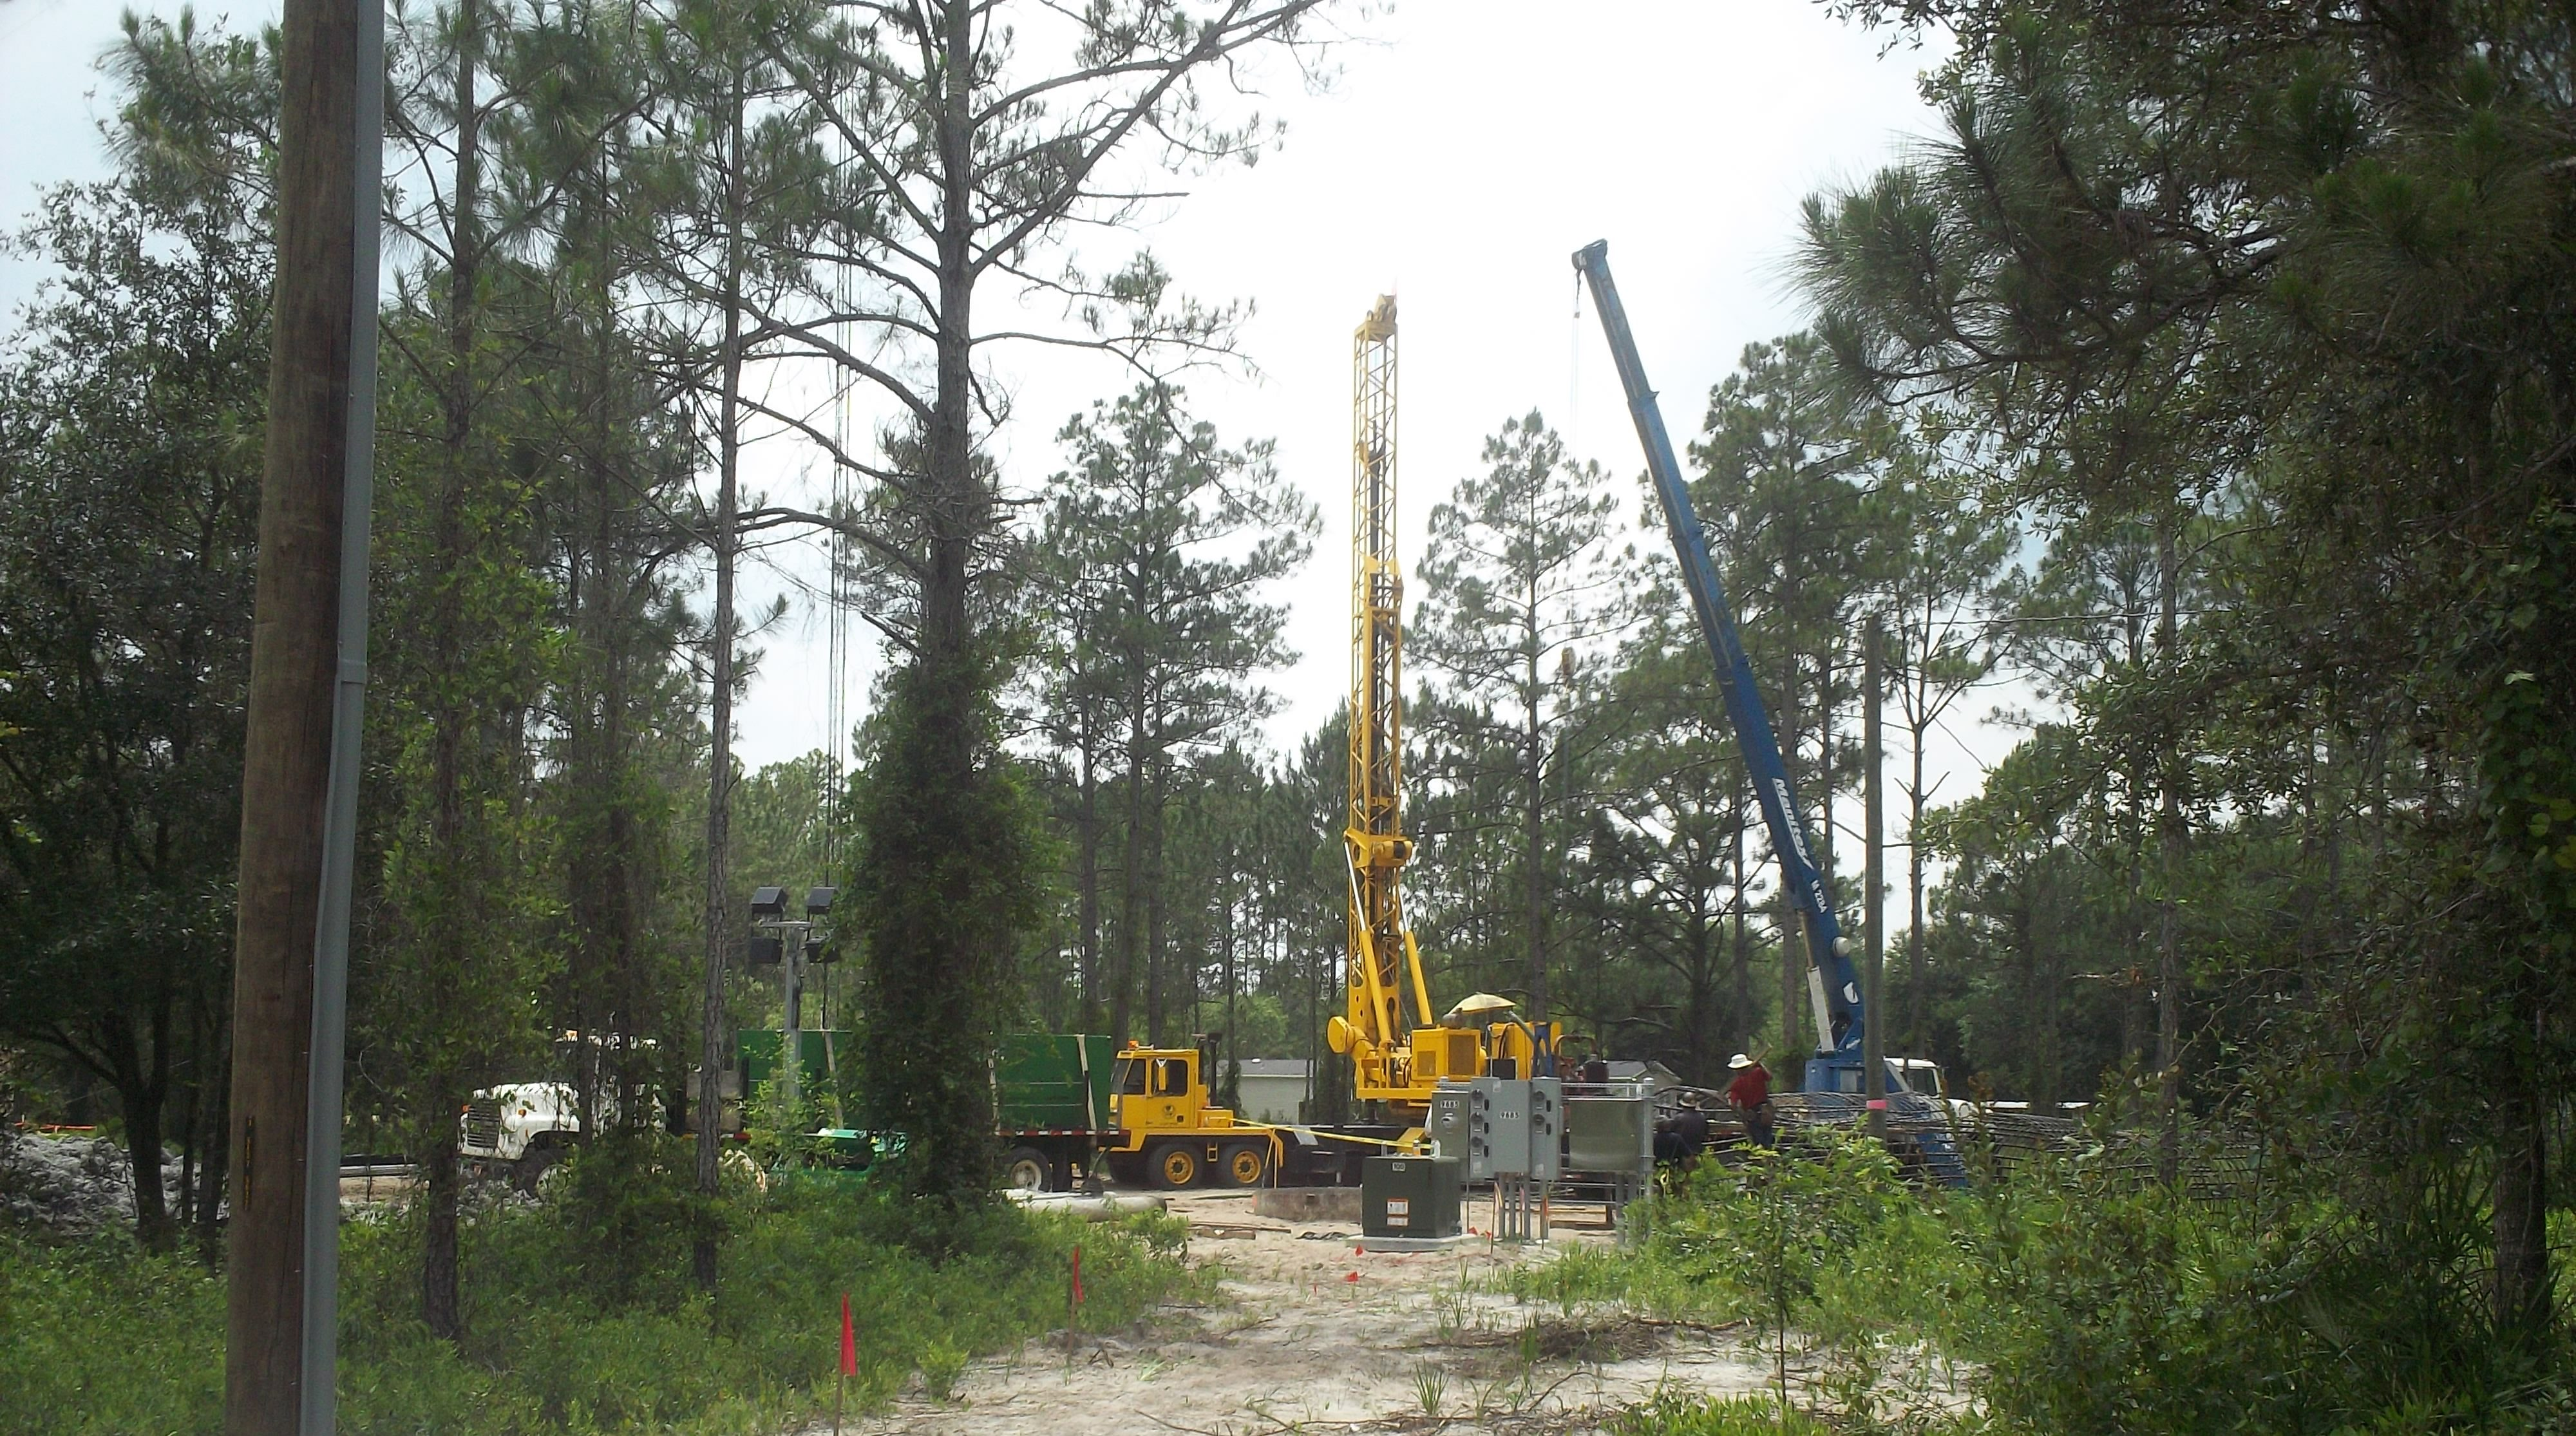 Photo of yellow and blue construction cranes at a jobsite surrounded by trees